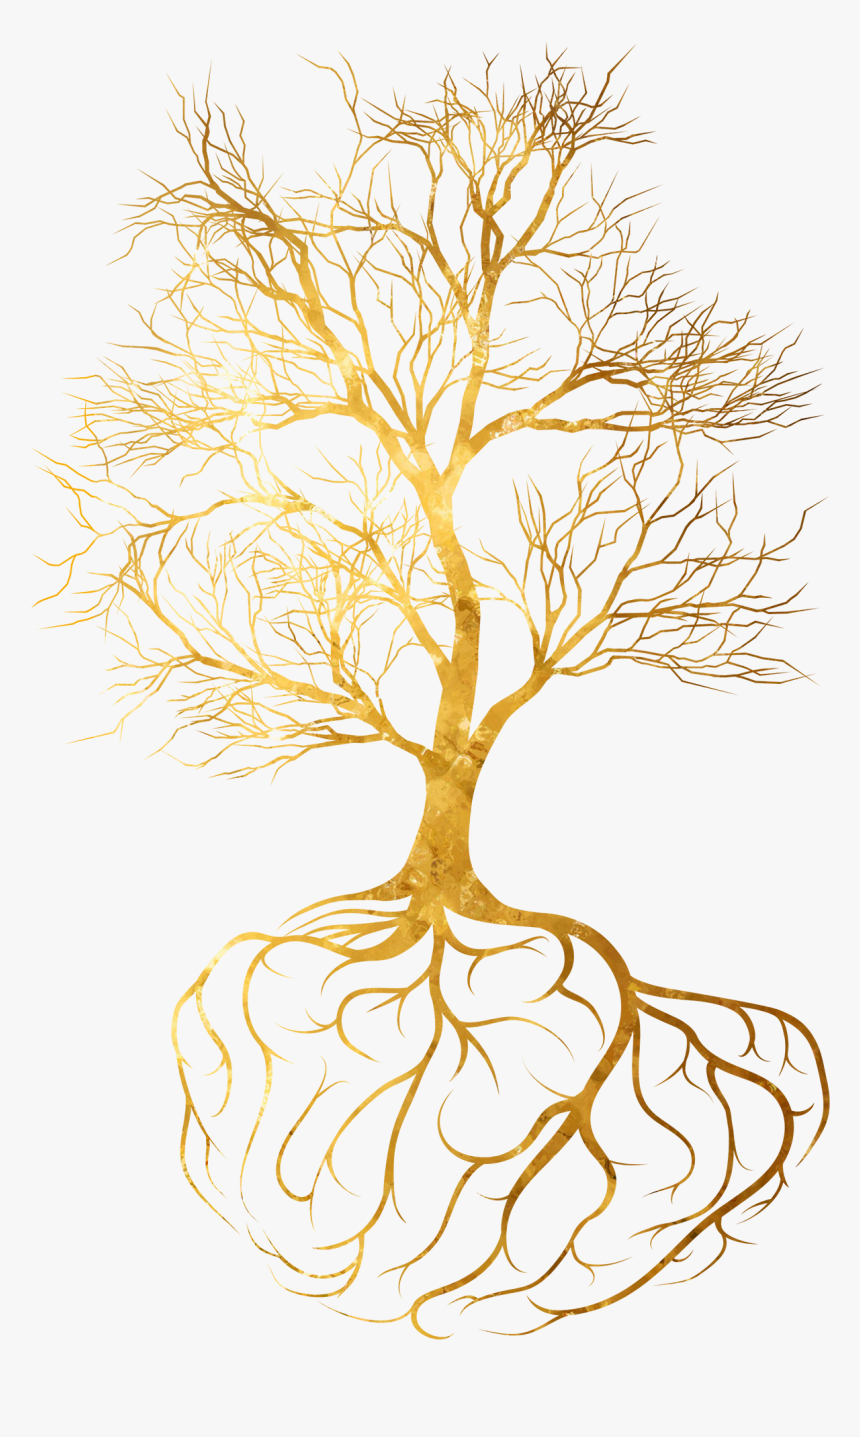 Toby Hana - Gold Tree Root Png, Transparent Png, Free Download